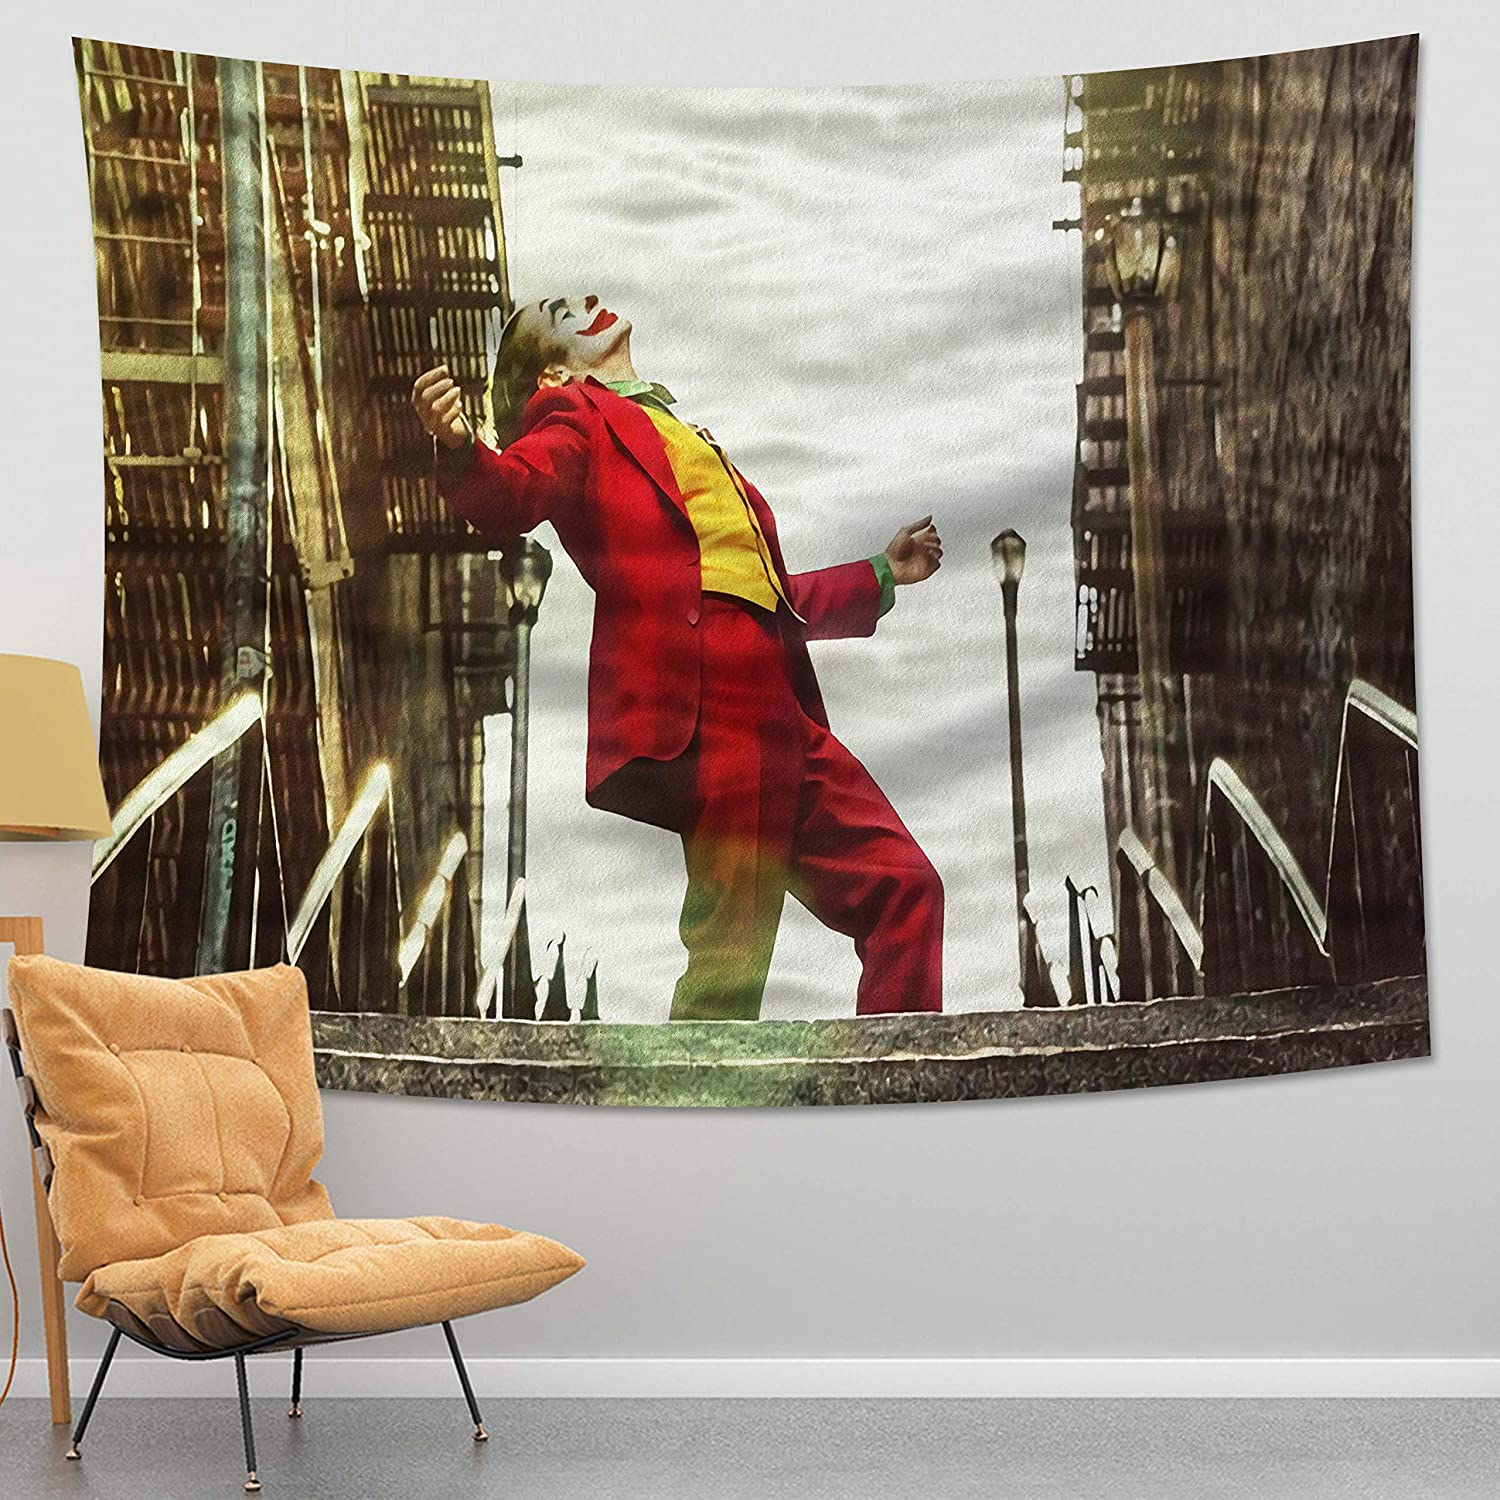 MEWE Movie Tapestry Hanging 55% OFF 59x70in Al sold out. Wall